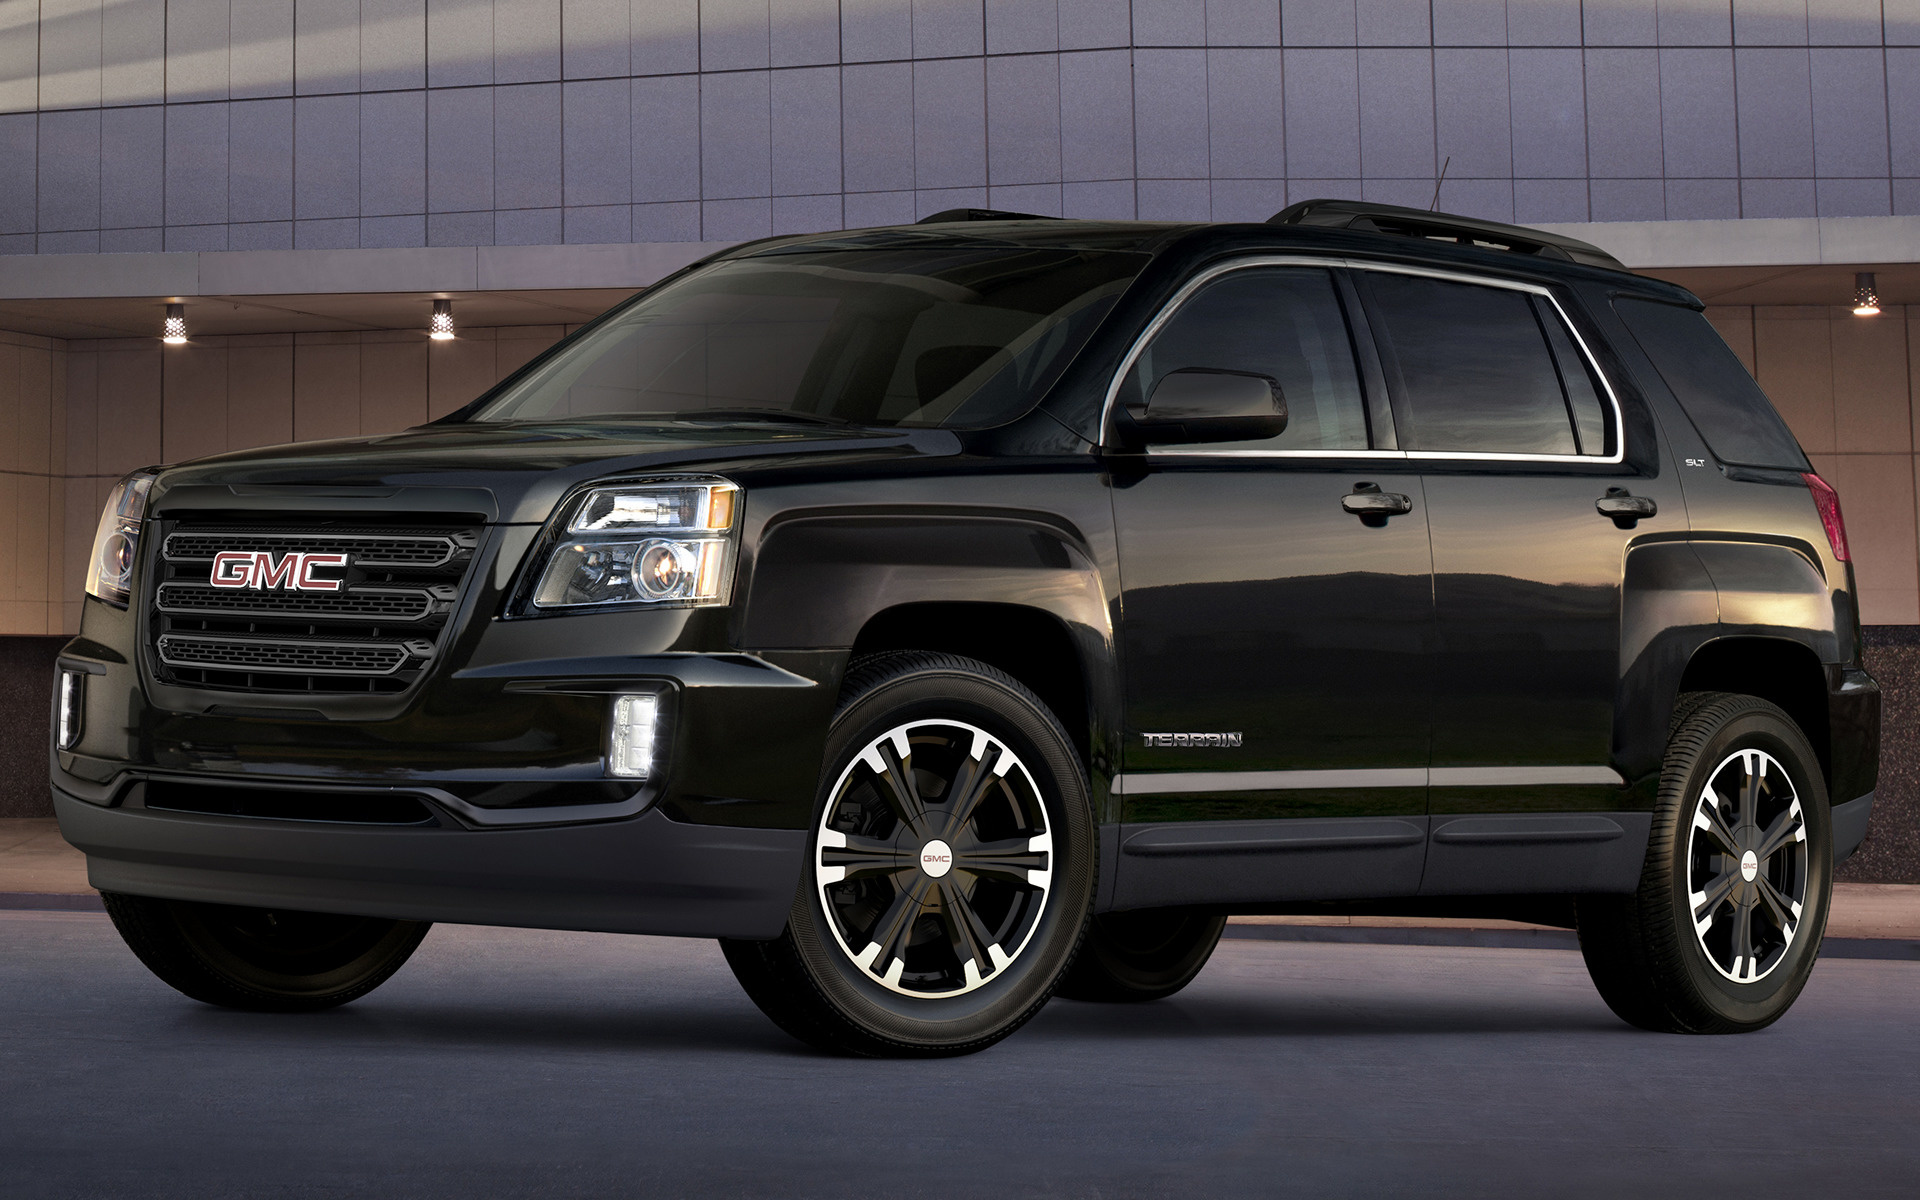 GMC Terrain Nightfall 2017 Wallpapers And HD Images